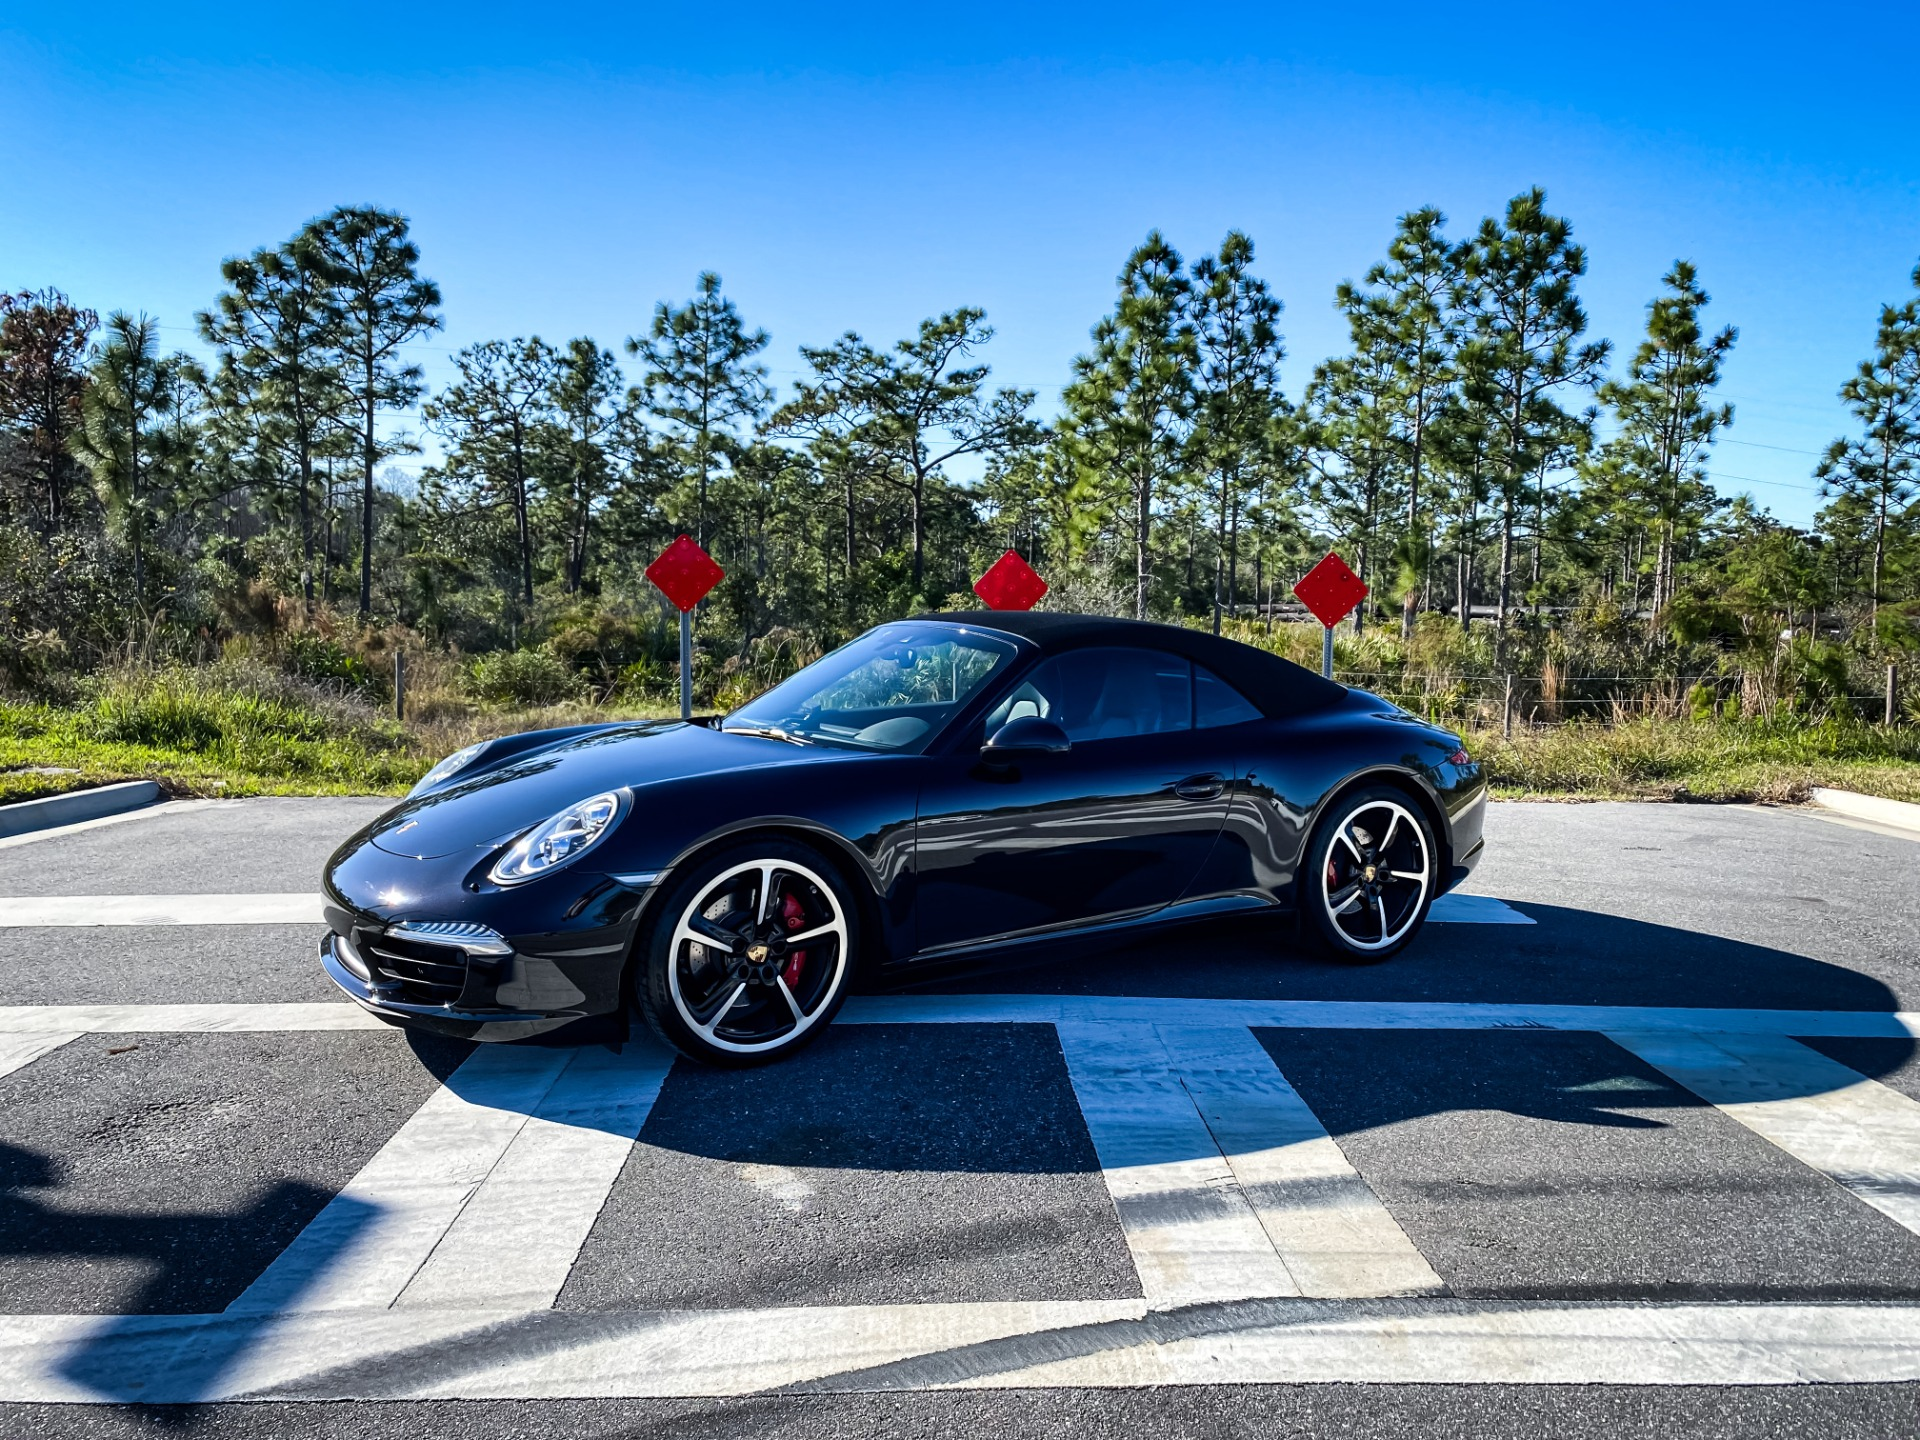 Used 2014 Porsche 911 Carrera S Cabriolet 2D for sale Sold at Track and Field Motors in Safety Harbor FL 34695 1